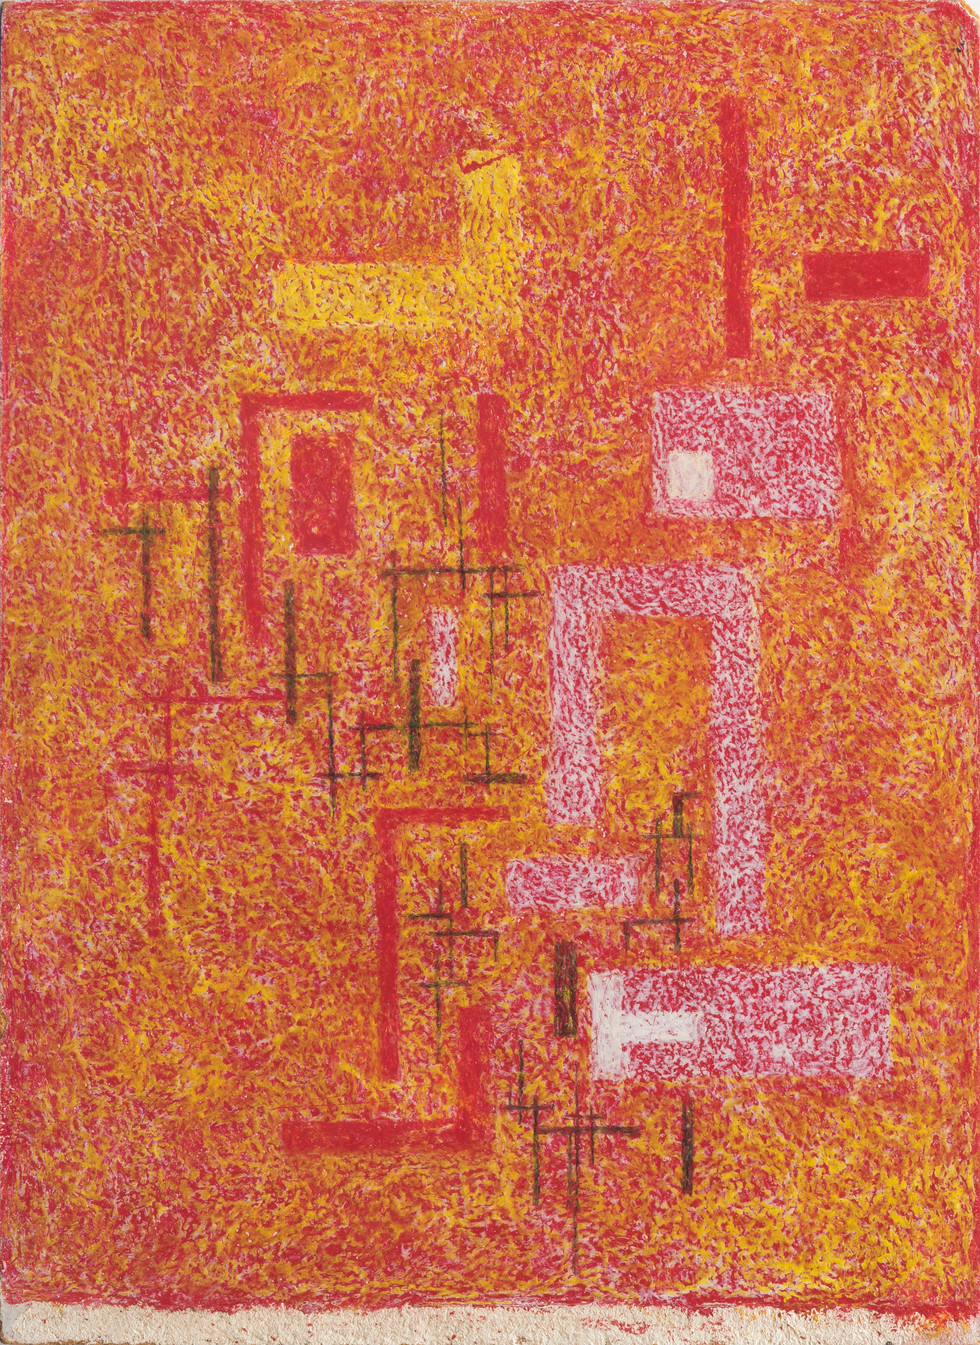 Untitled - red, yellow and white blocks on yellow and red background, white stripe on bottom (front)